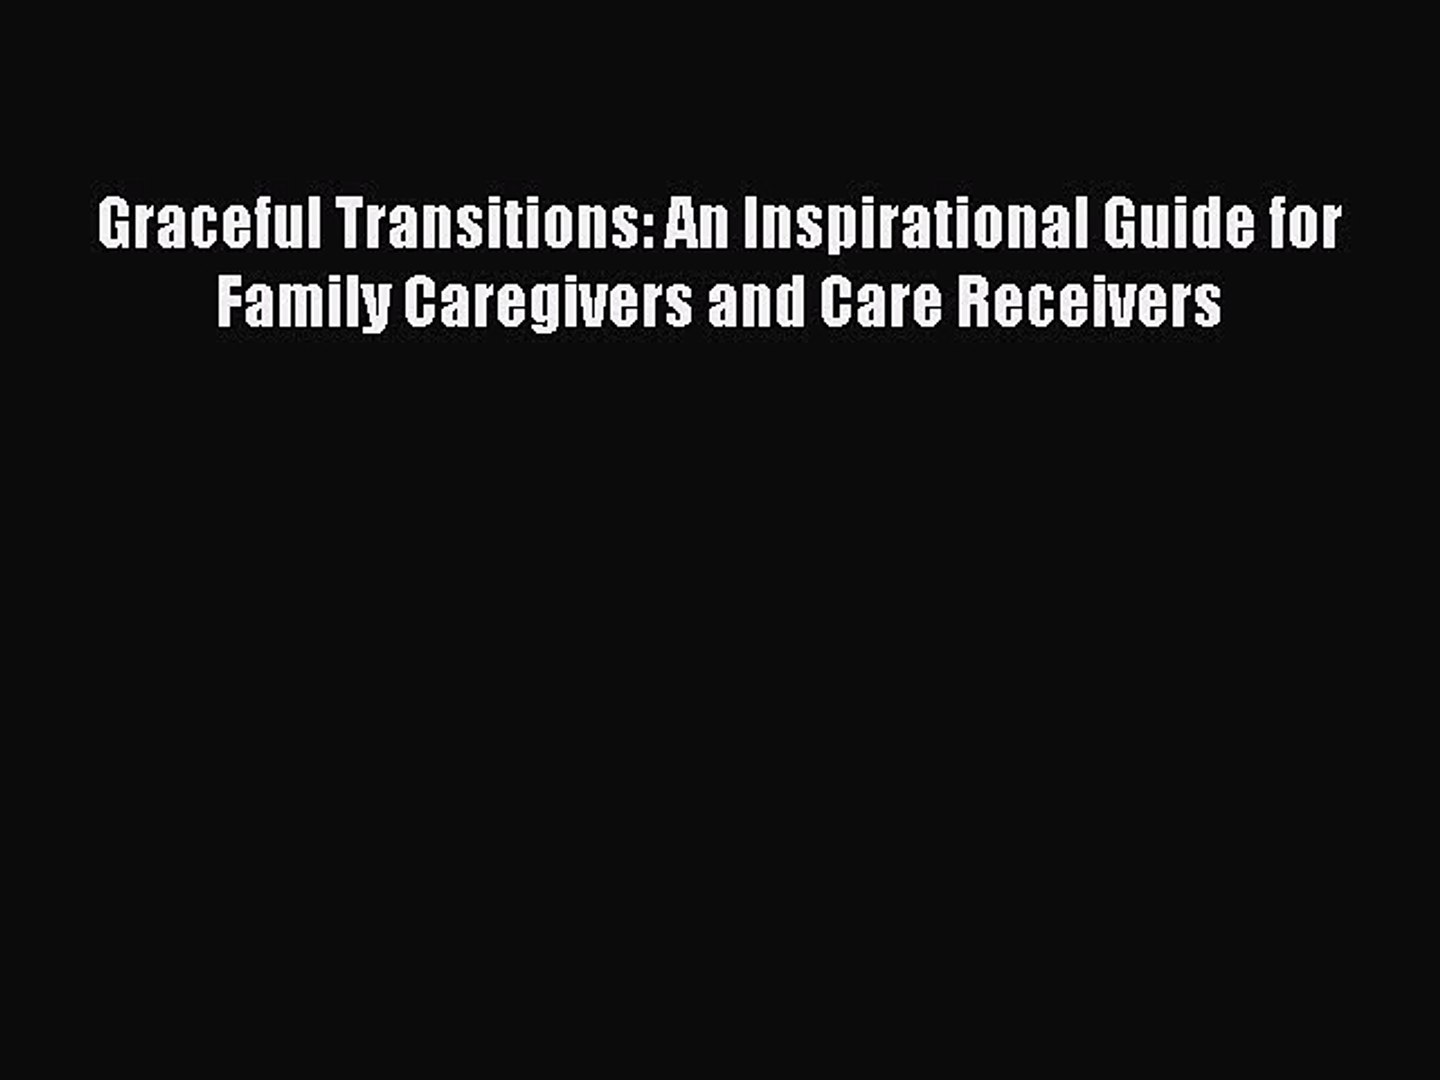 Graceful Transitions: An Inspirational Guide for Family Caregivers and Care Receivers